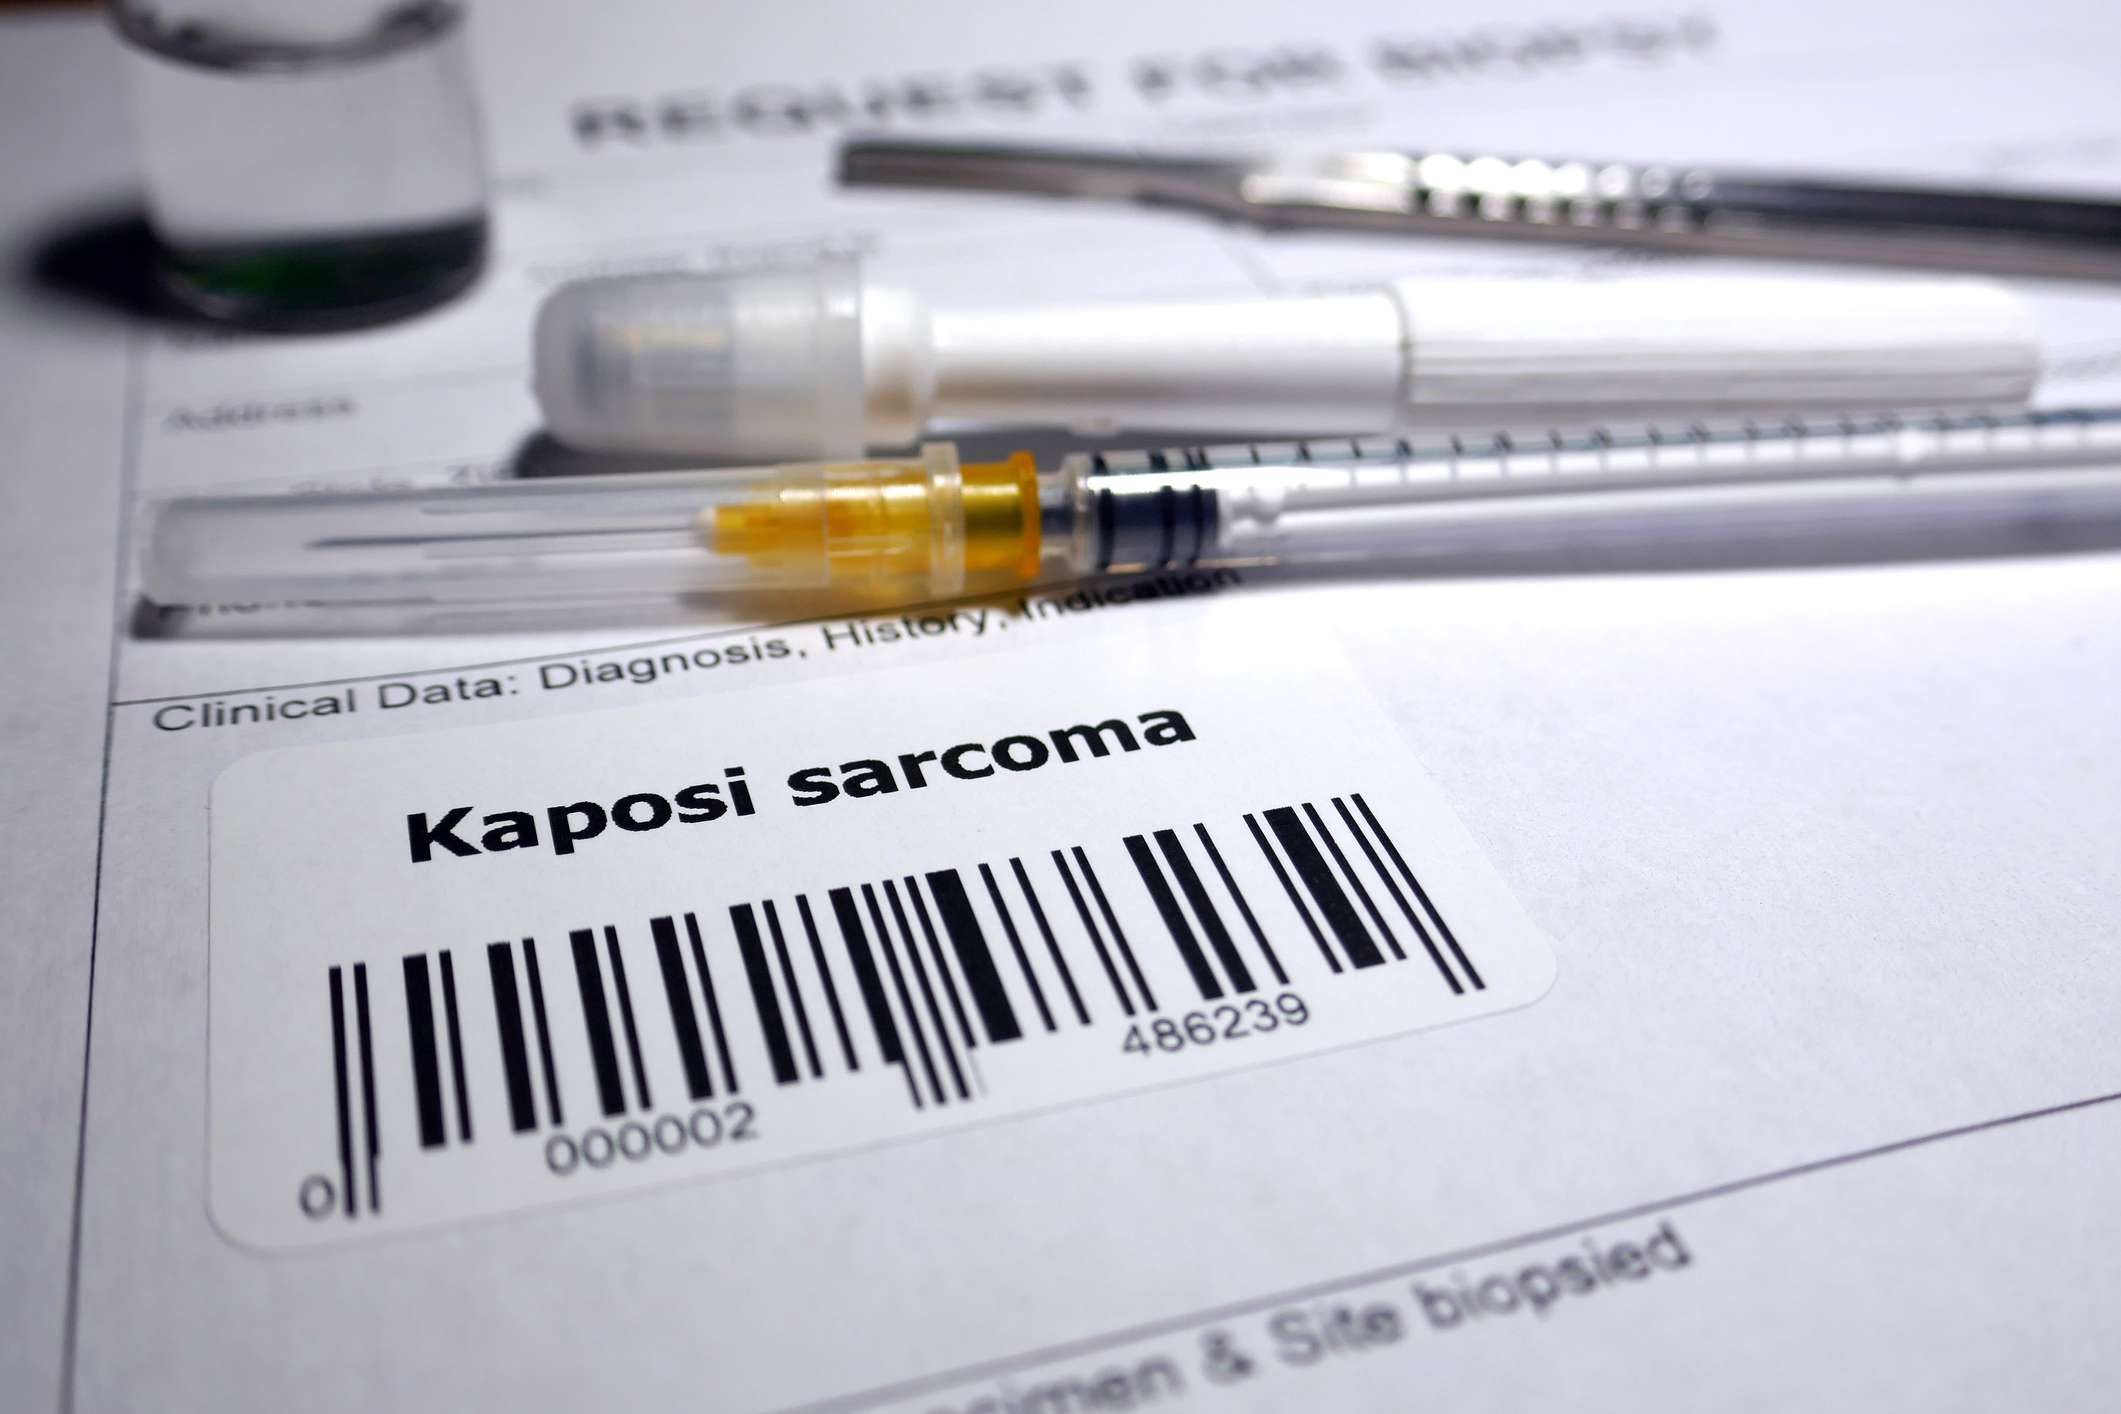 Request for biopsy paperwork - Kaposi sarcoma